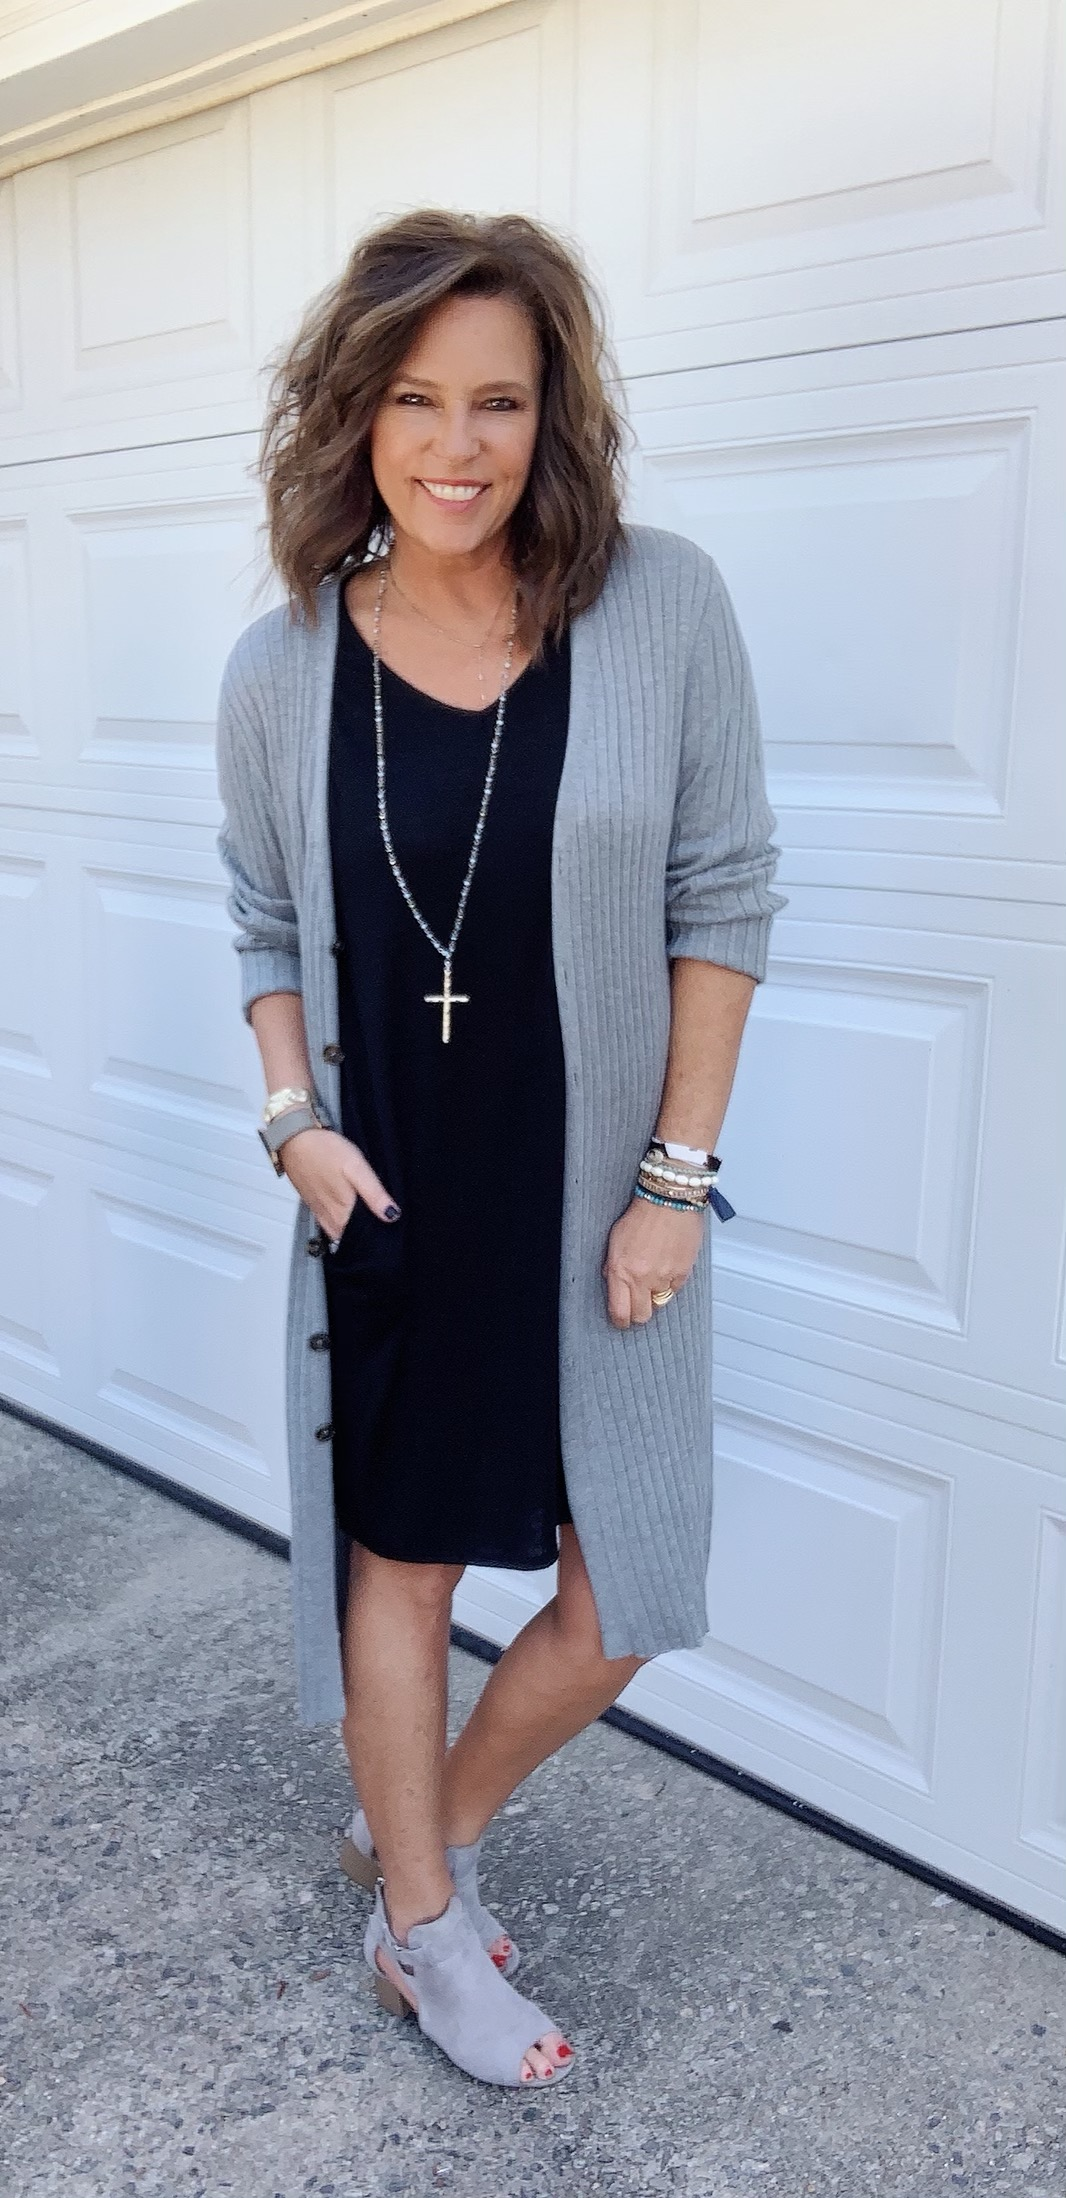 How To Wear A Long Cardigan With A Dress | B and B Blog